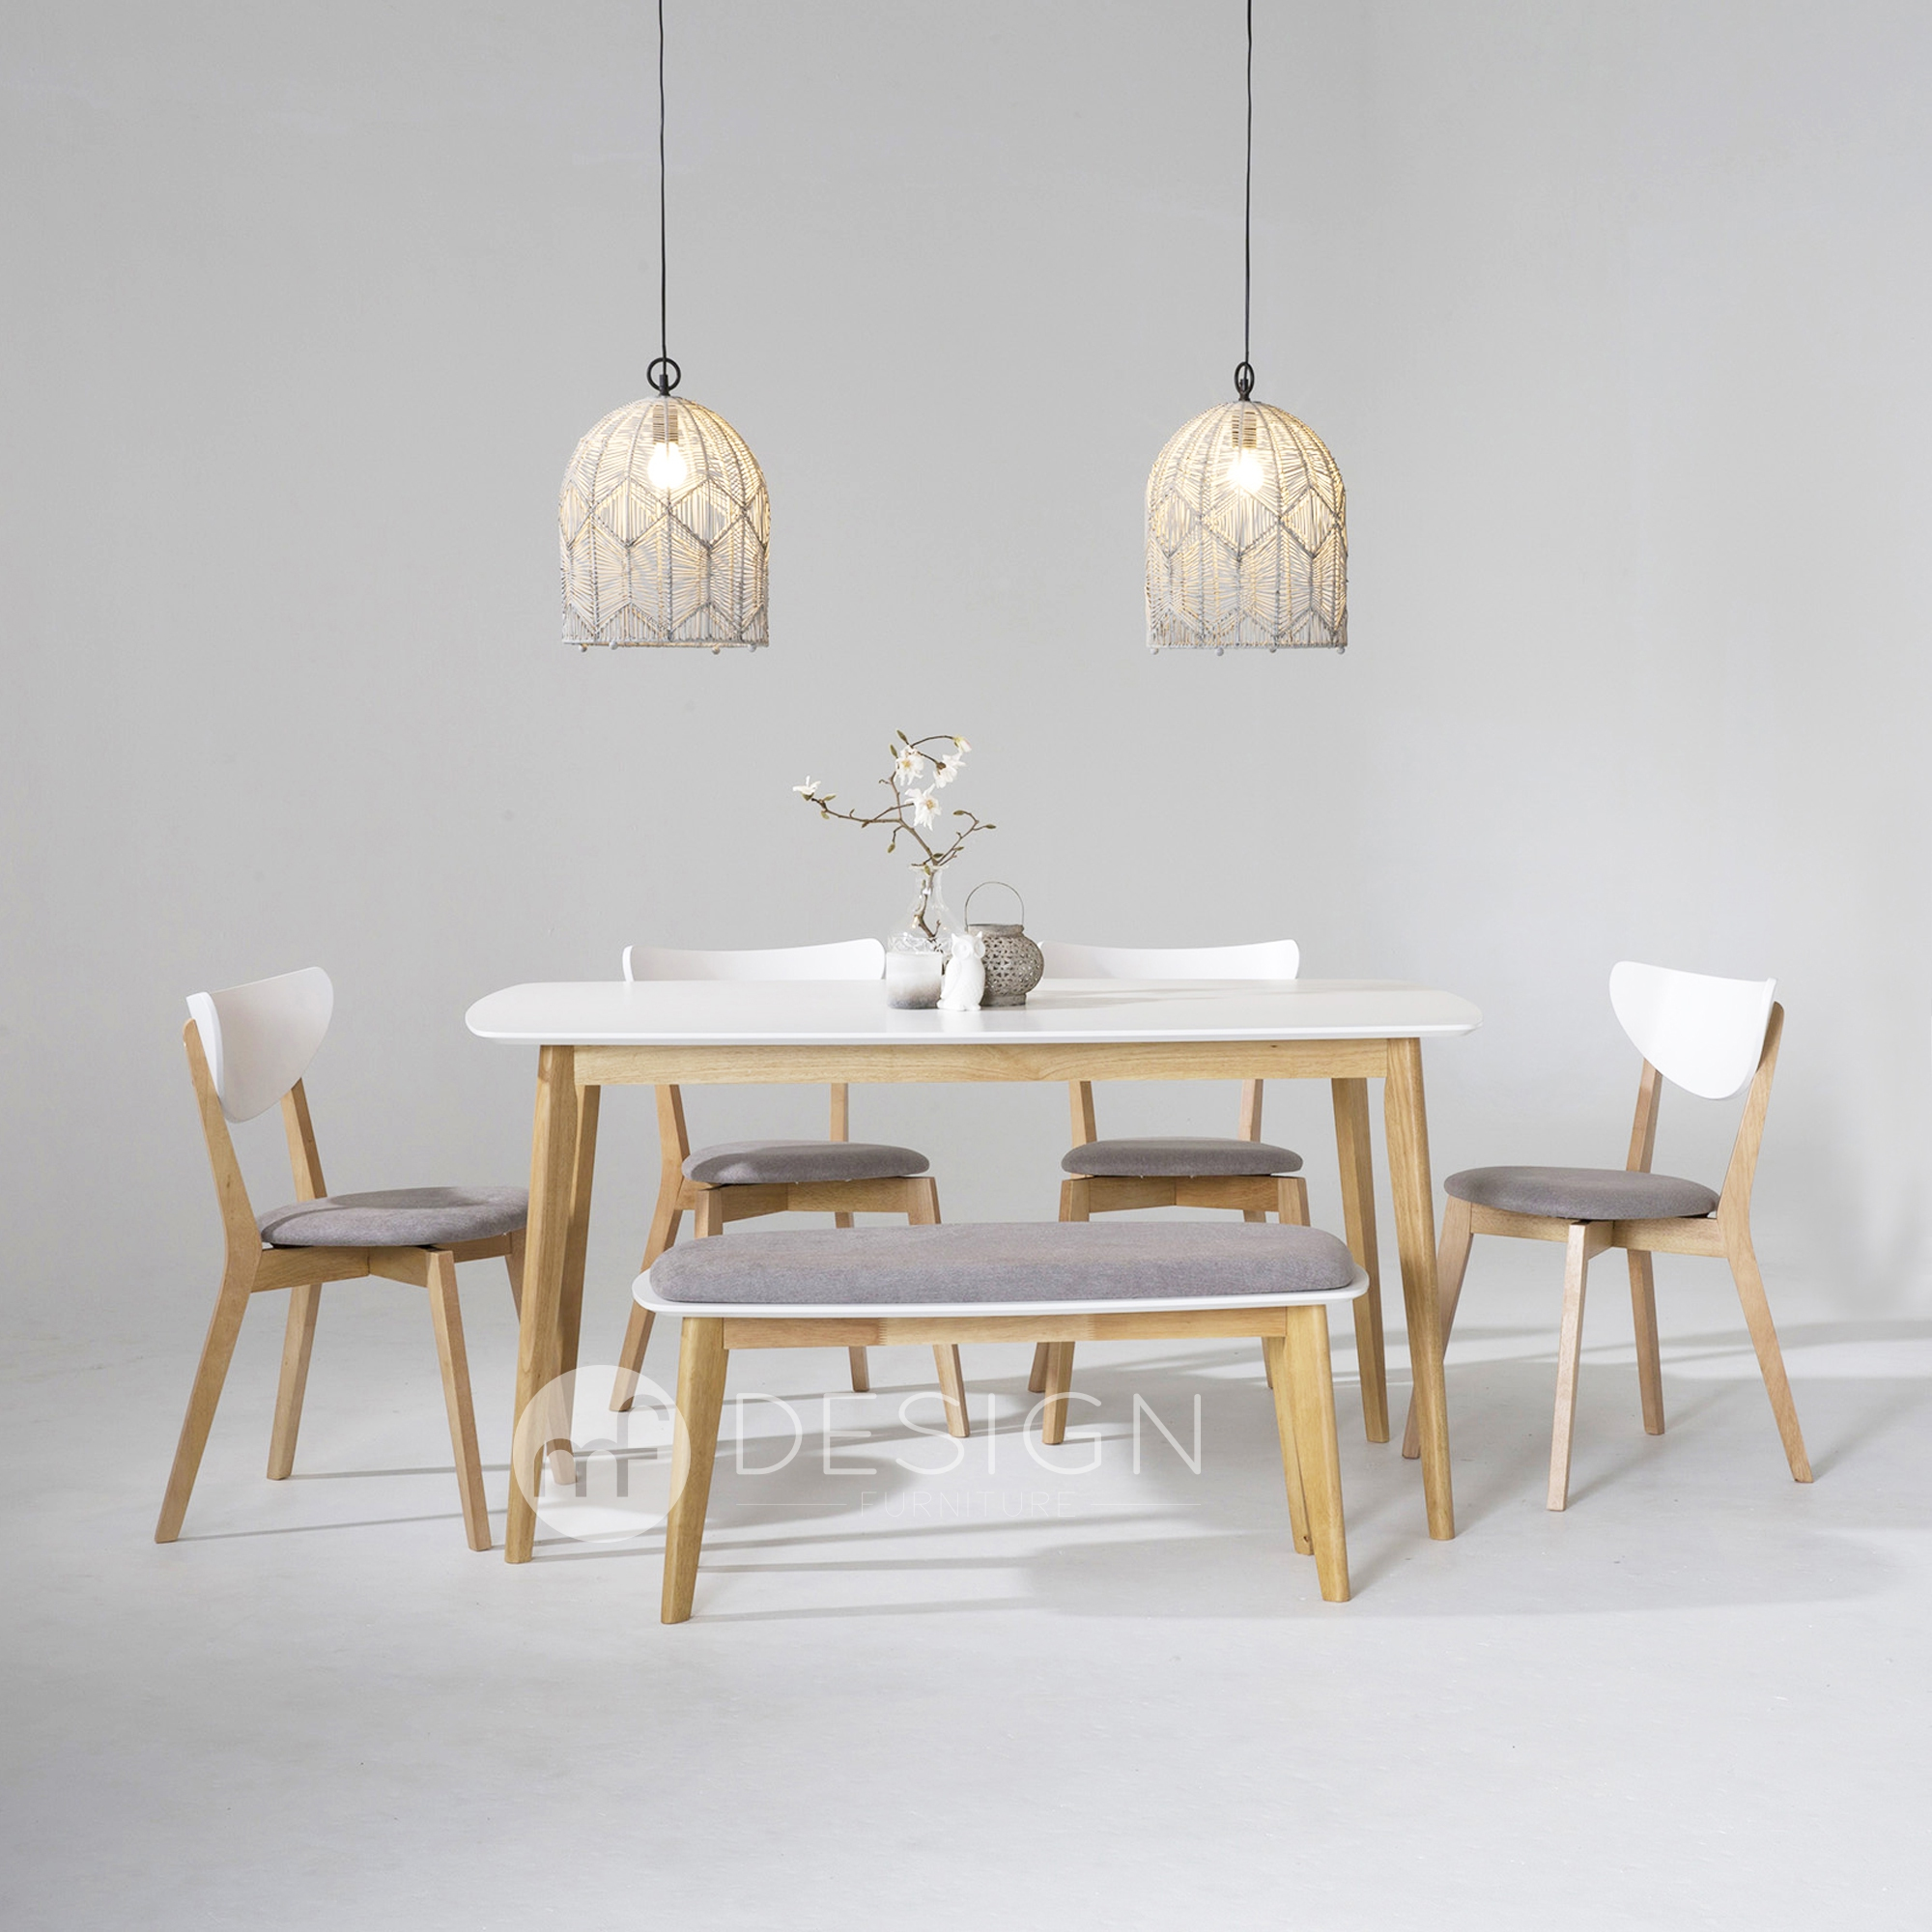 Mf Design Estonia Natural Wood Table 4 Chairs 1 Bench Chair Dining Set